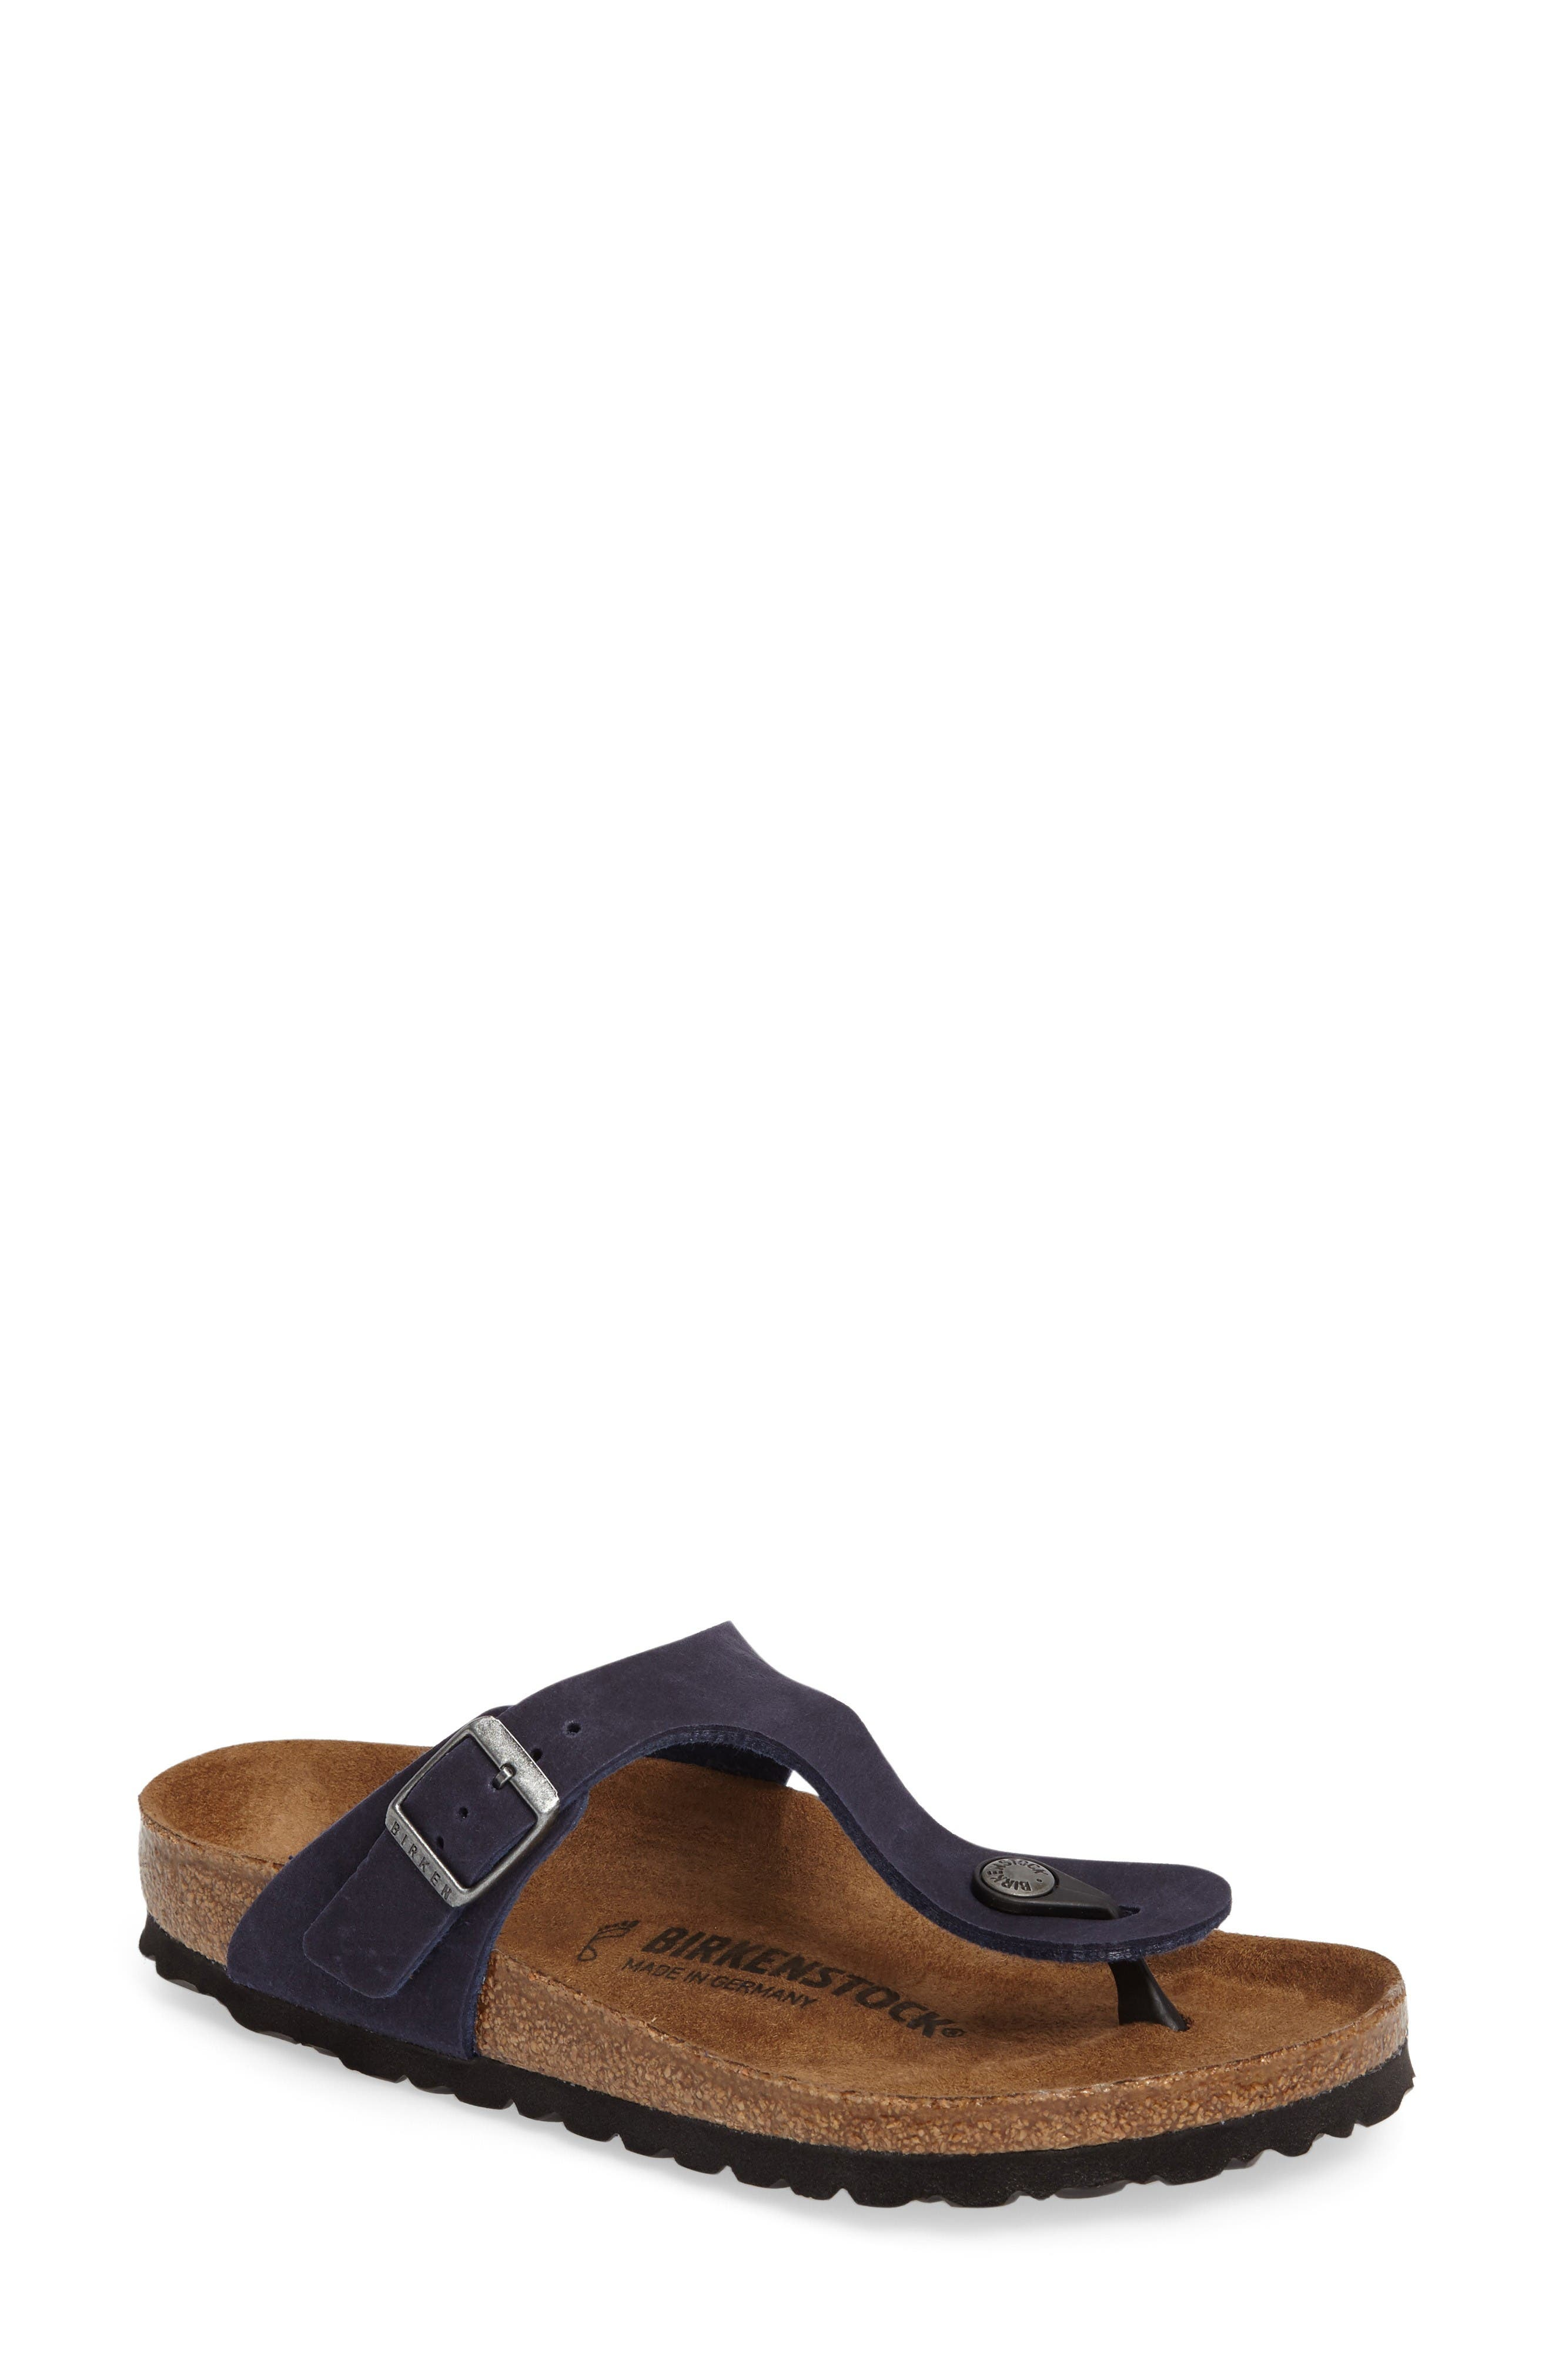 Alternate Image 1 Selected - Birkenstock Gizeh Flip Flop (Women)